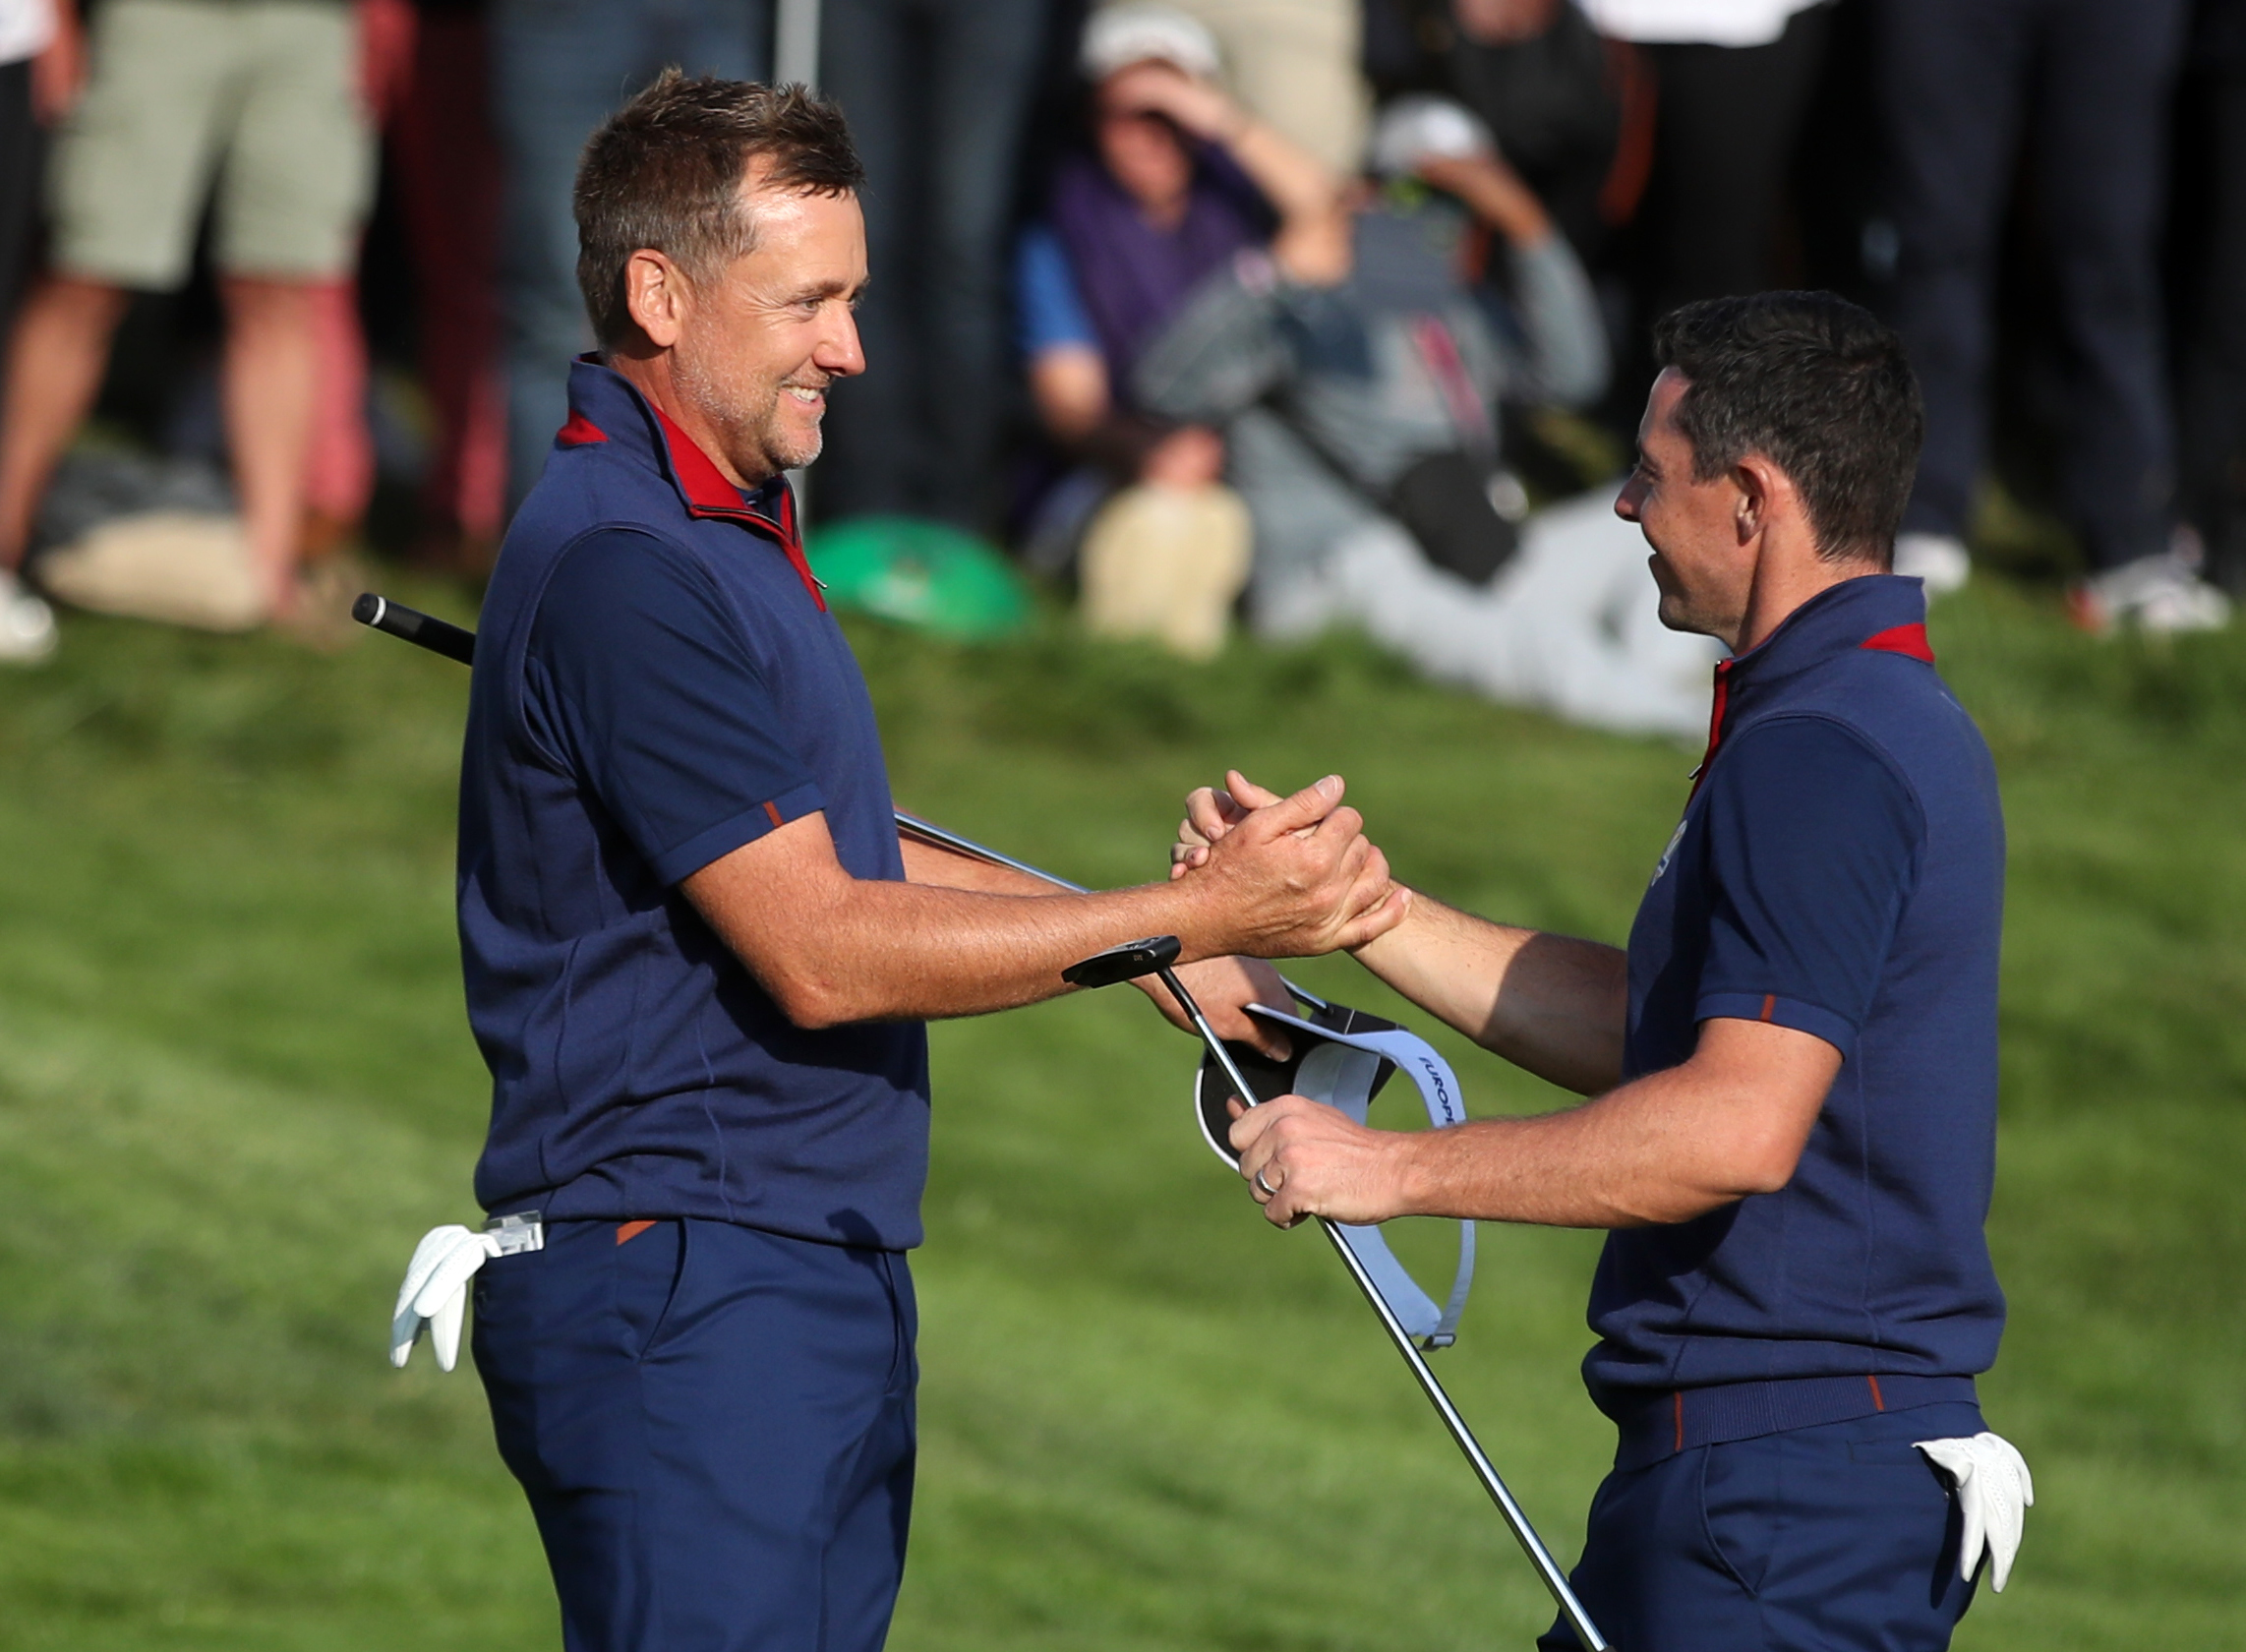 Ian Poulter teamed up to get Rory McIlroy back on track at the Ryder Cup.